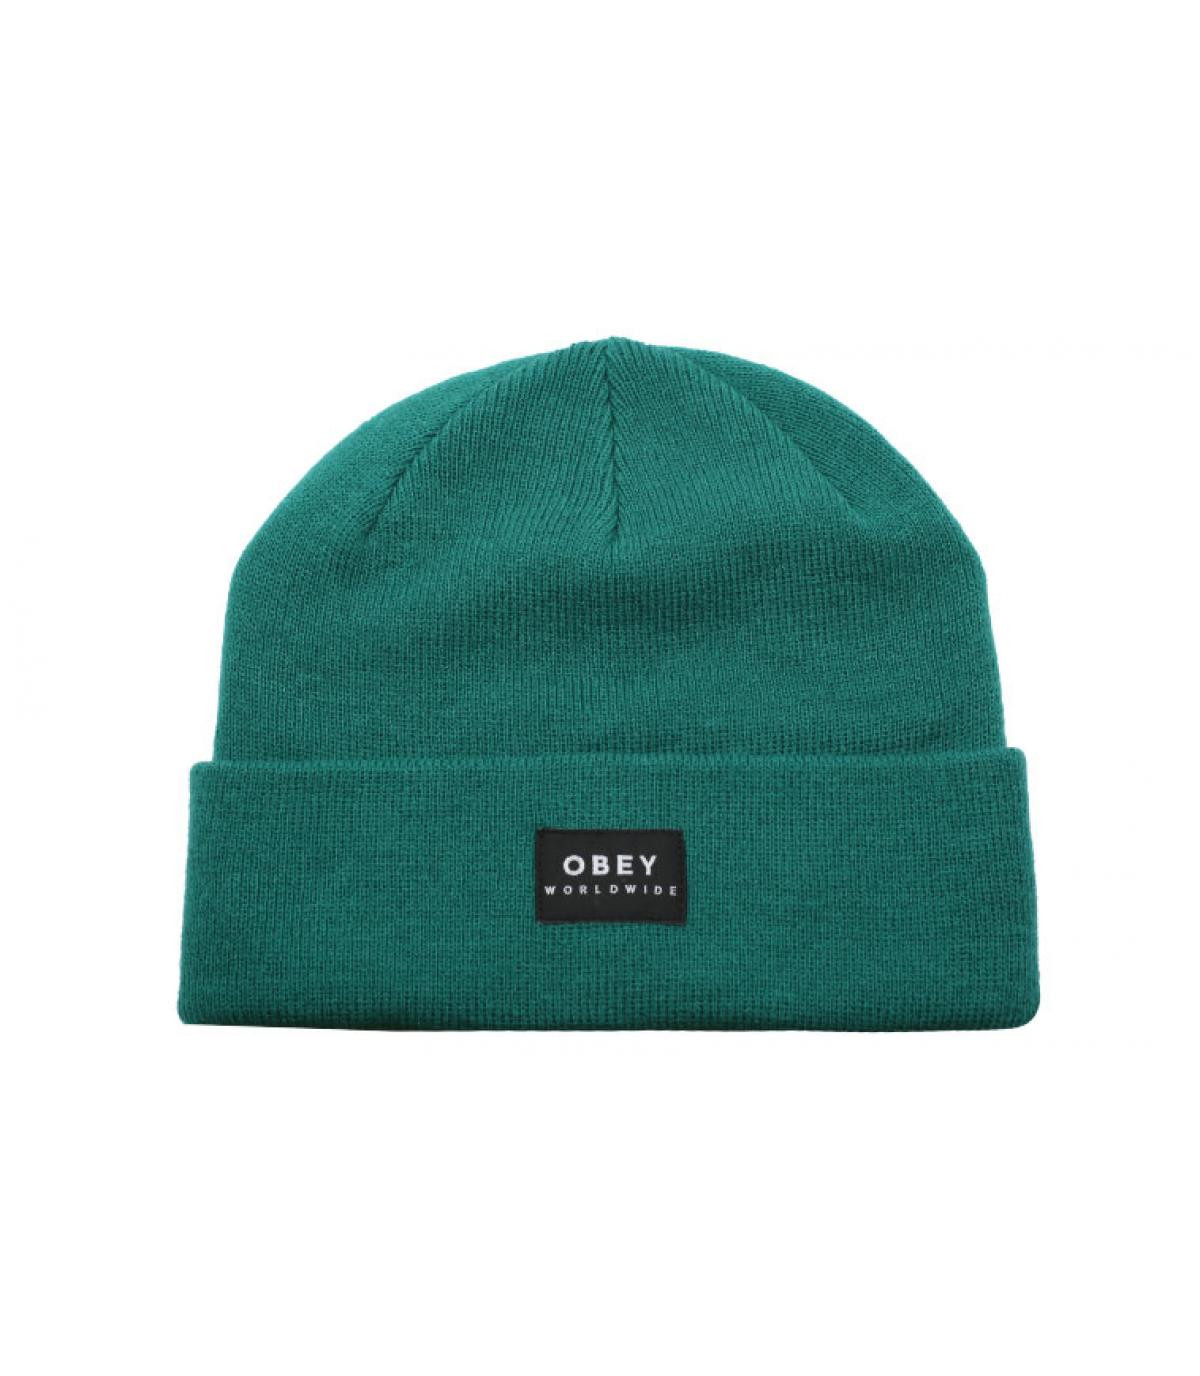 Obey turquoise cuffed beanie